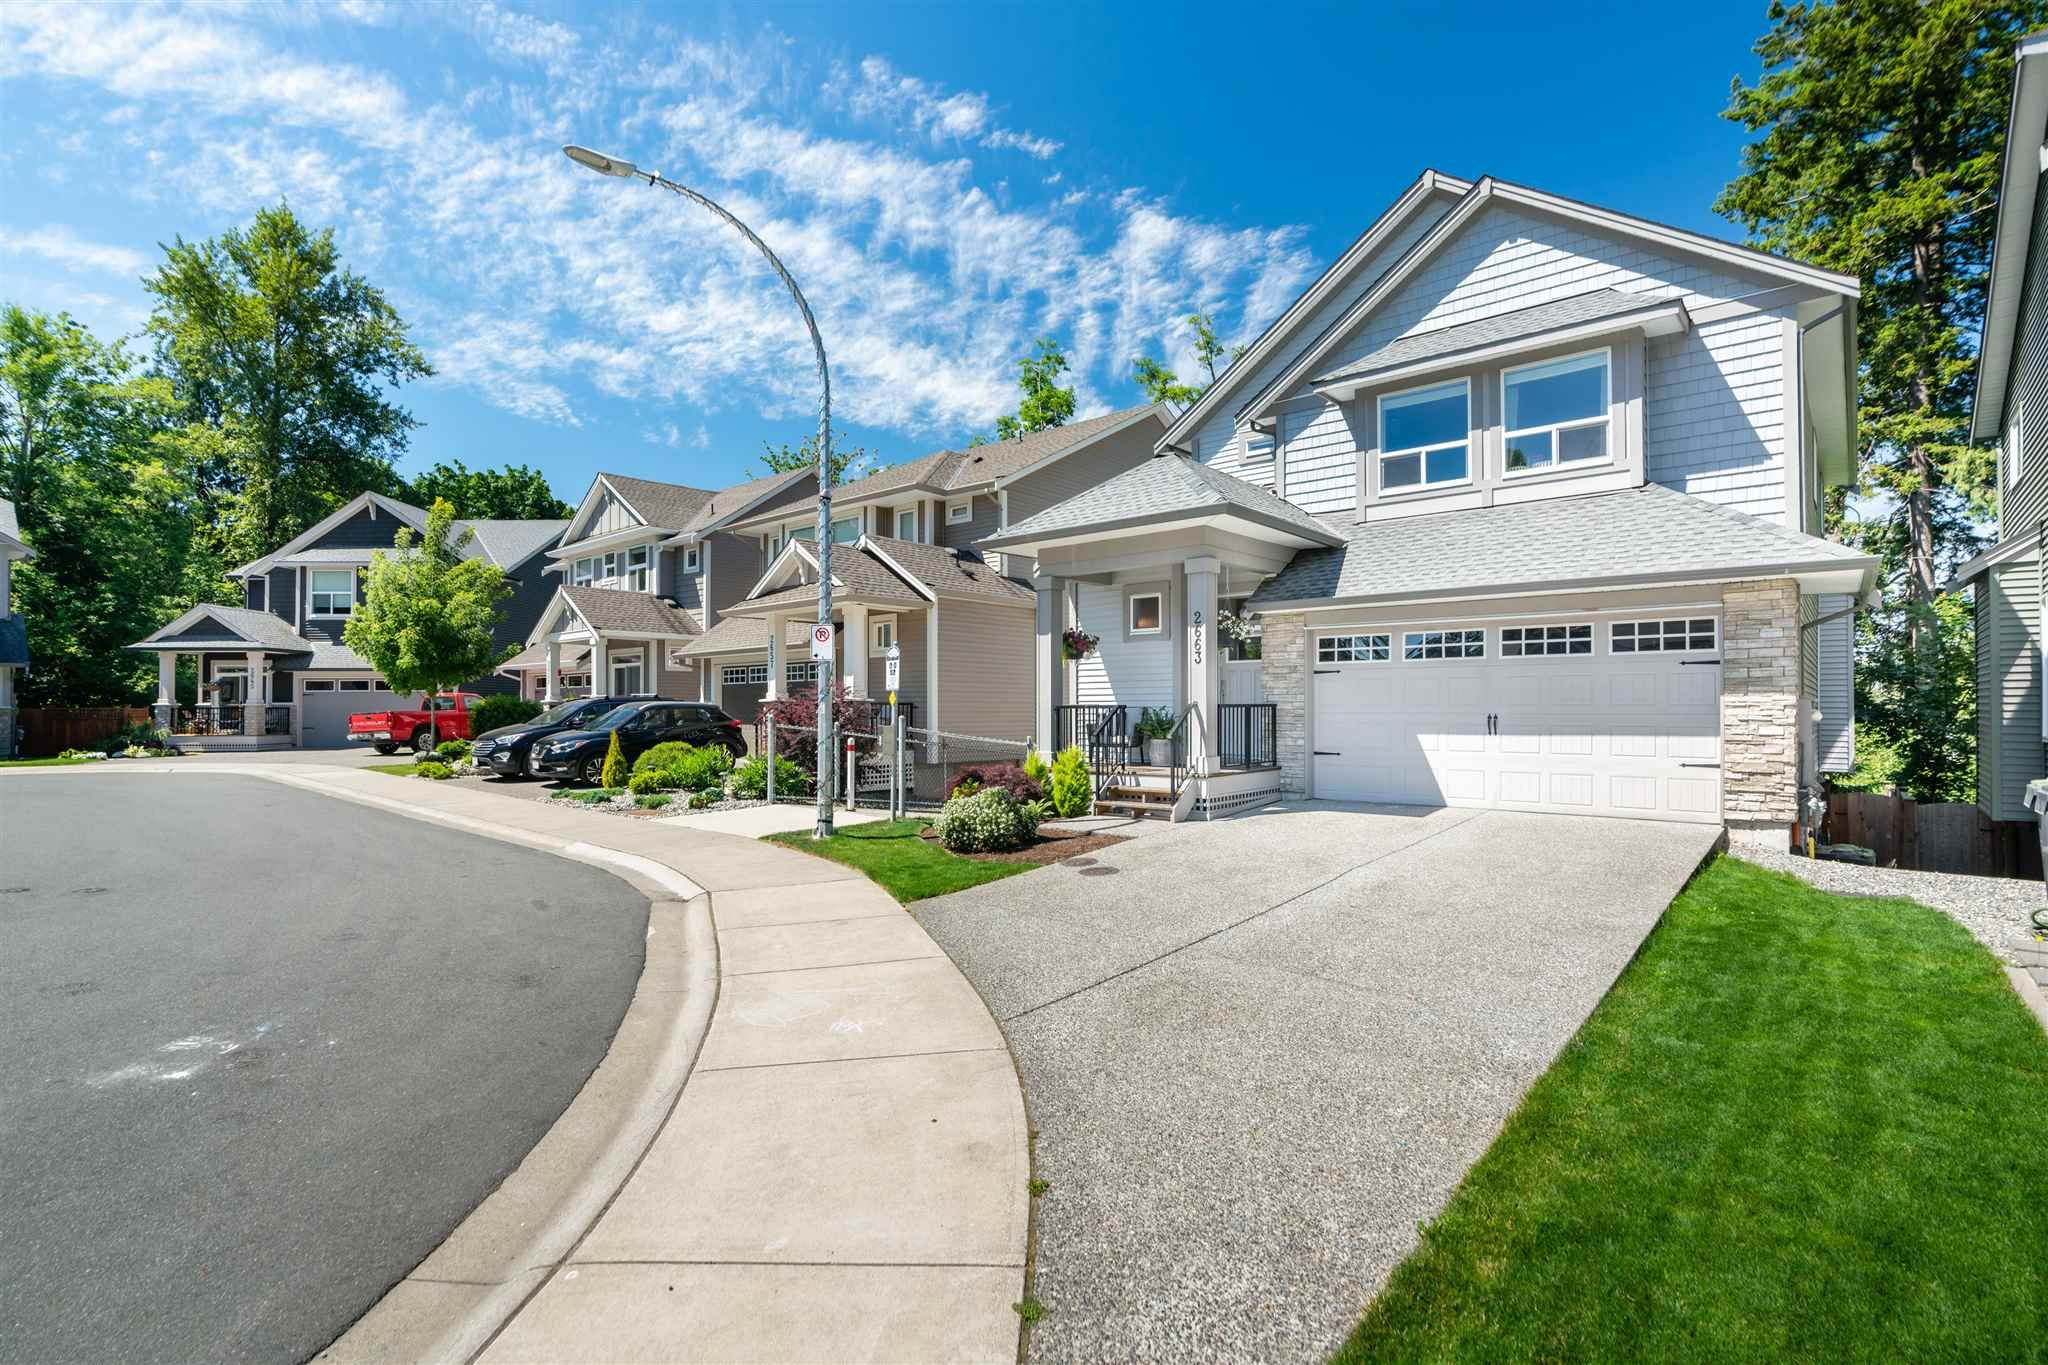 """Main Photo: 2663 275A Street in Langley: Aldergrove Langley House for sale in """"BERTRAND CREEK"""" : MLS®# R2595221"""